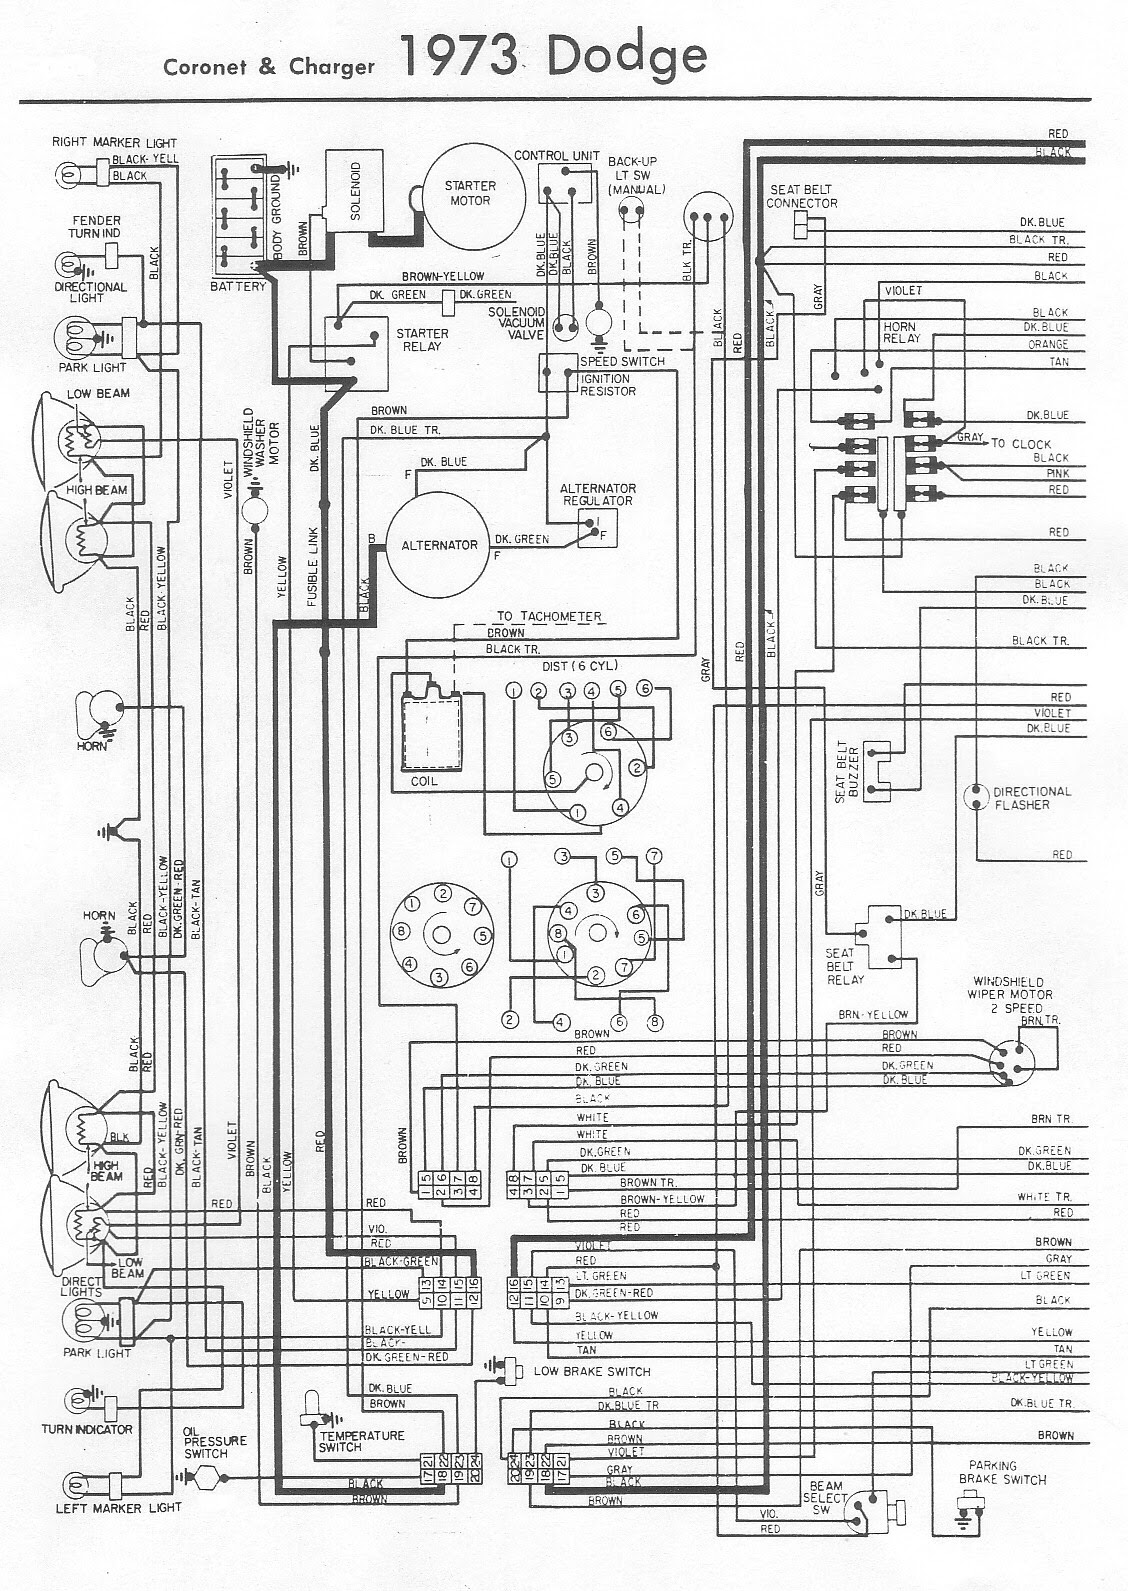 1968 Dodge Coronet Wiring Diagram Kfx 400 Wiring Diagram Begeboy Wiring Diagram Source